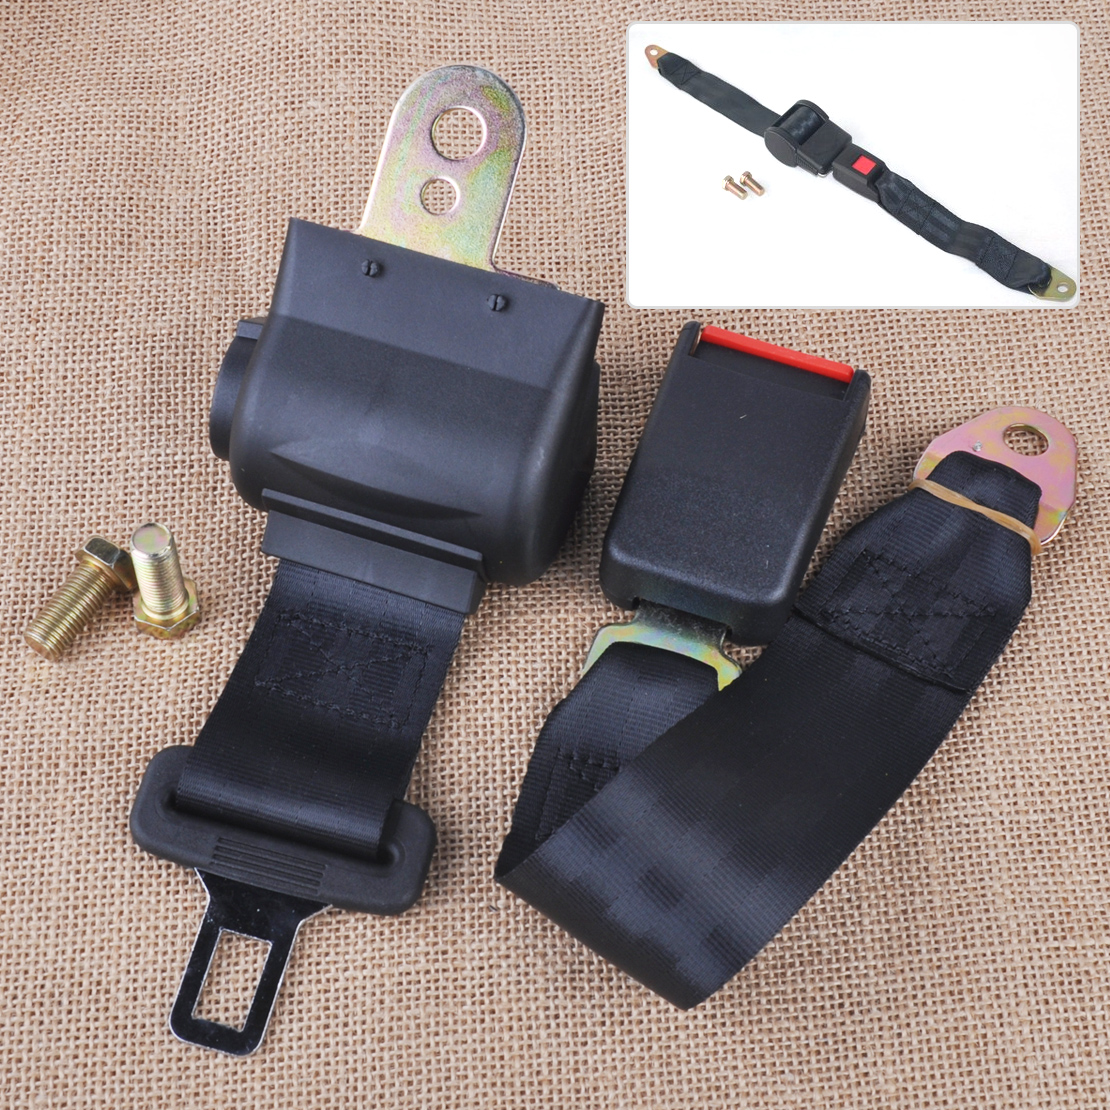 CITALL Universal Black 2 Point RetractableCar Auto Seat Safety Lap Belt Strap Buckle Adjustable Security Belt stylish crown universal stainless steel seat belt buckle latches pair